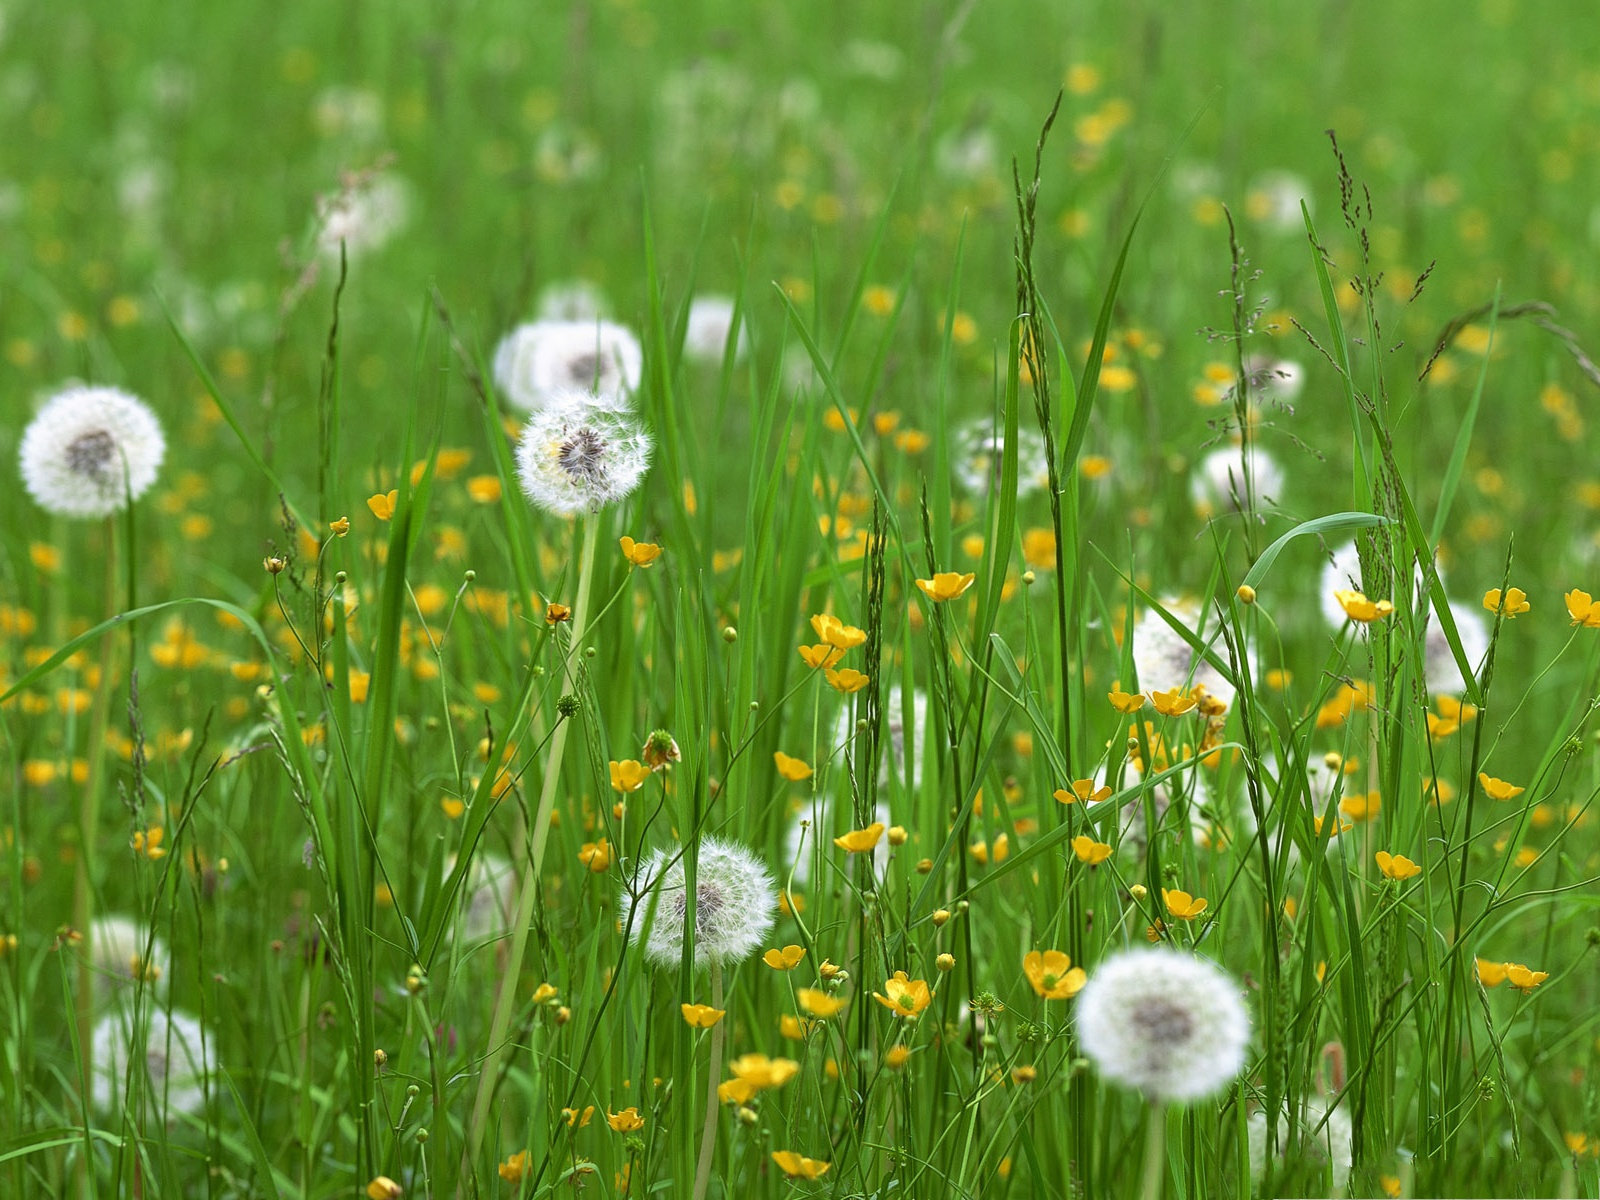 White flowers in grass 20 free wallpaper hdflowerwallpaper white flowers in grass free wallpaper mightylinksfo